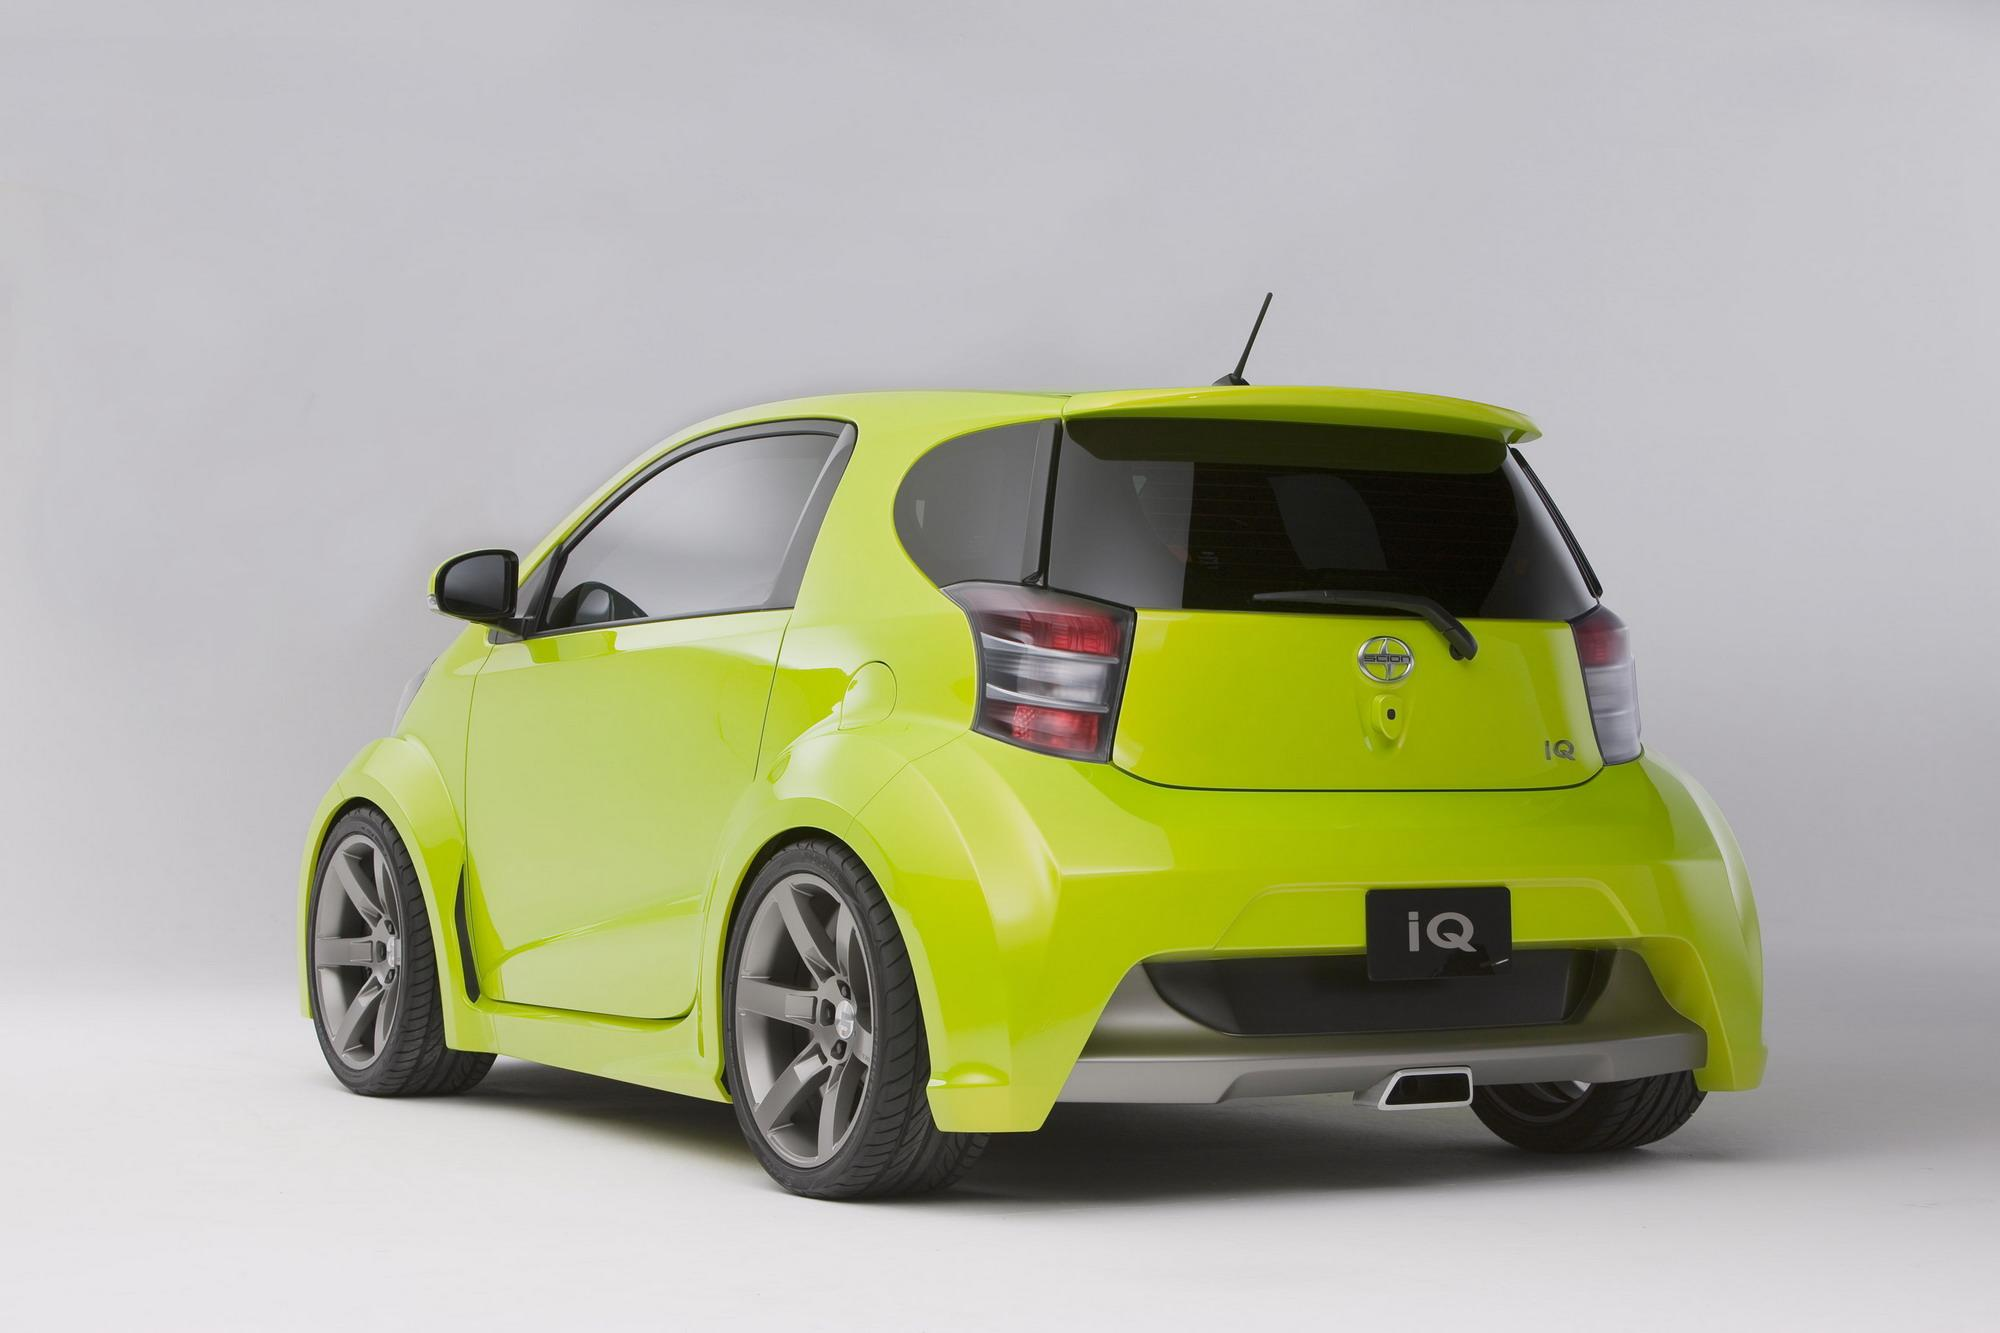 Worksheet. 2009 Scion Iq Concept Gallery  HD Cars Wallpaper Gallery